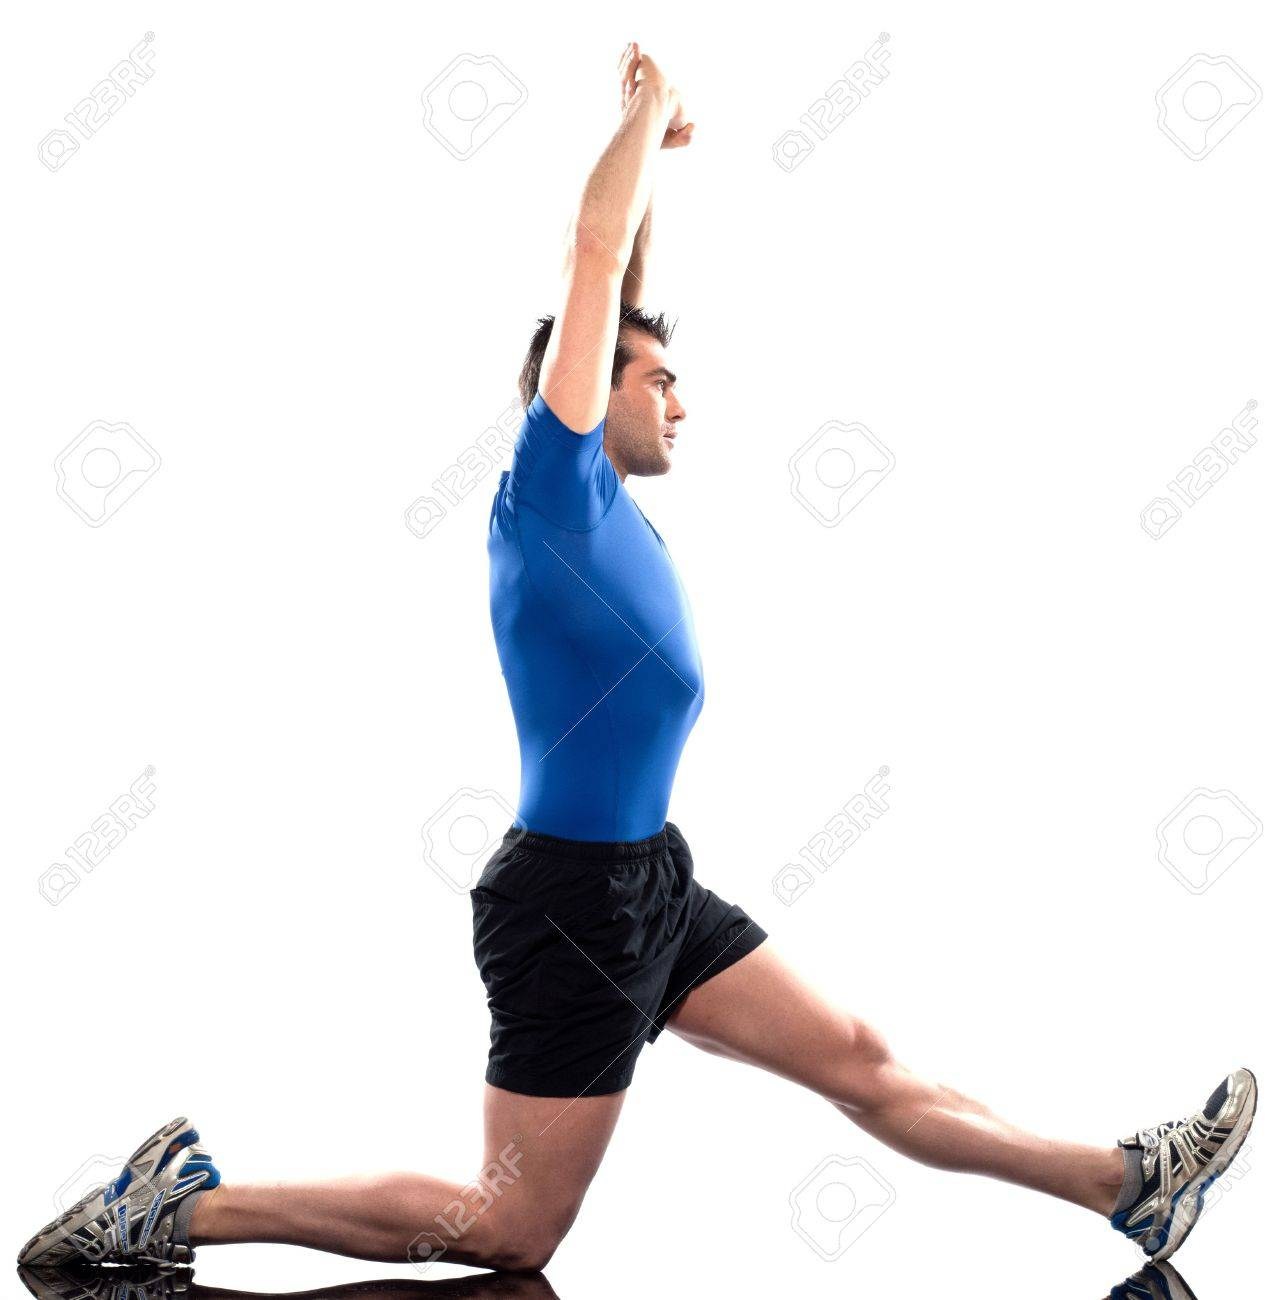 Stretching Workout Posture By A Man On Studio White Background 1271x1300